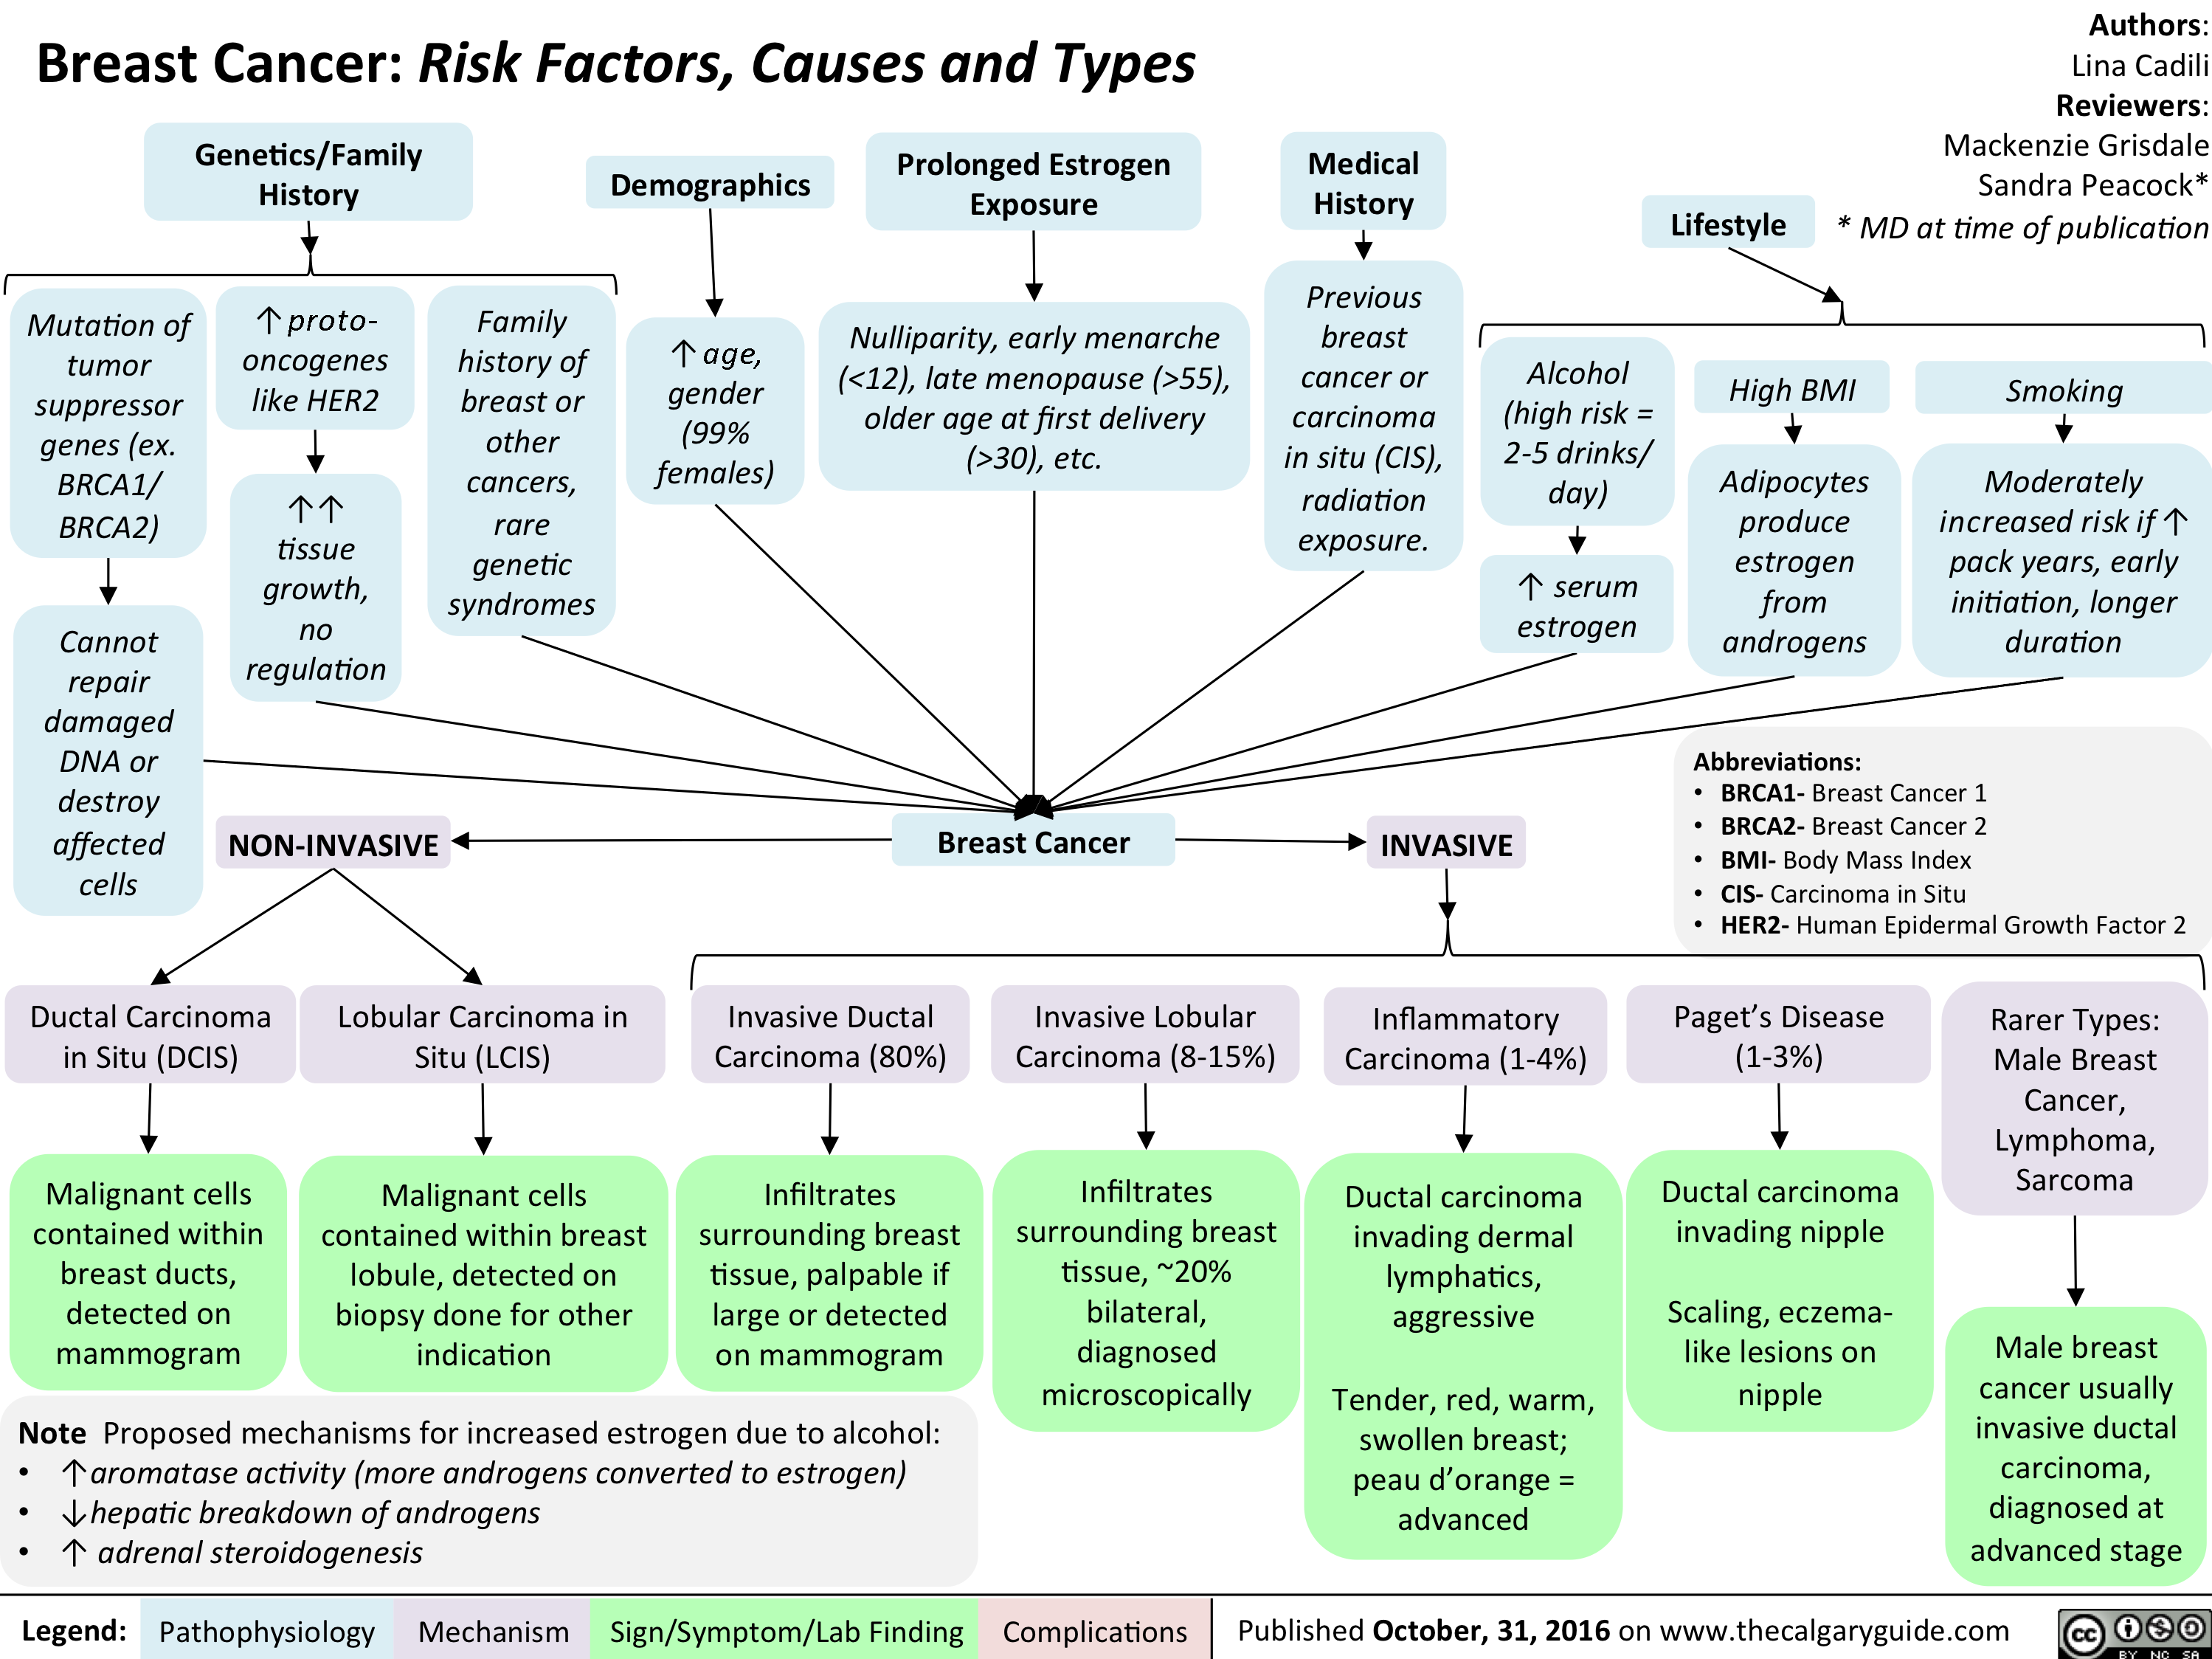 breast-cancer-risk-factors-causes-and-types